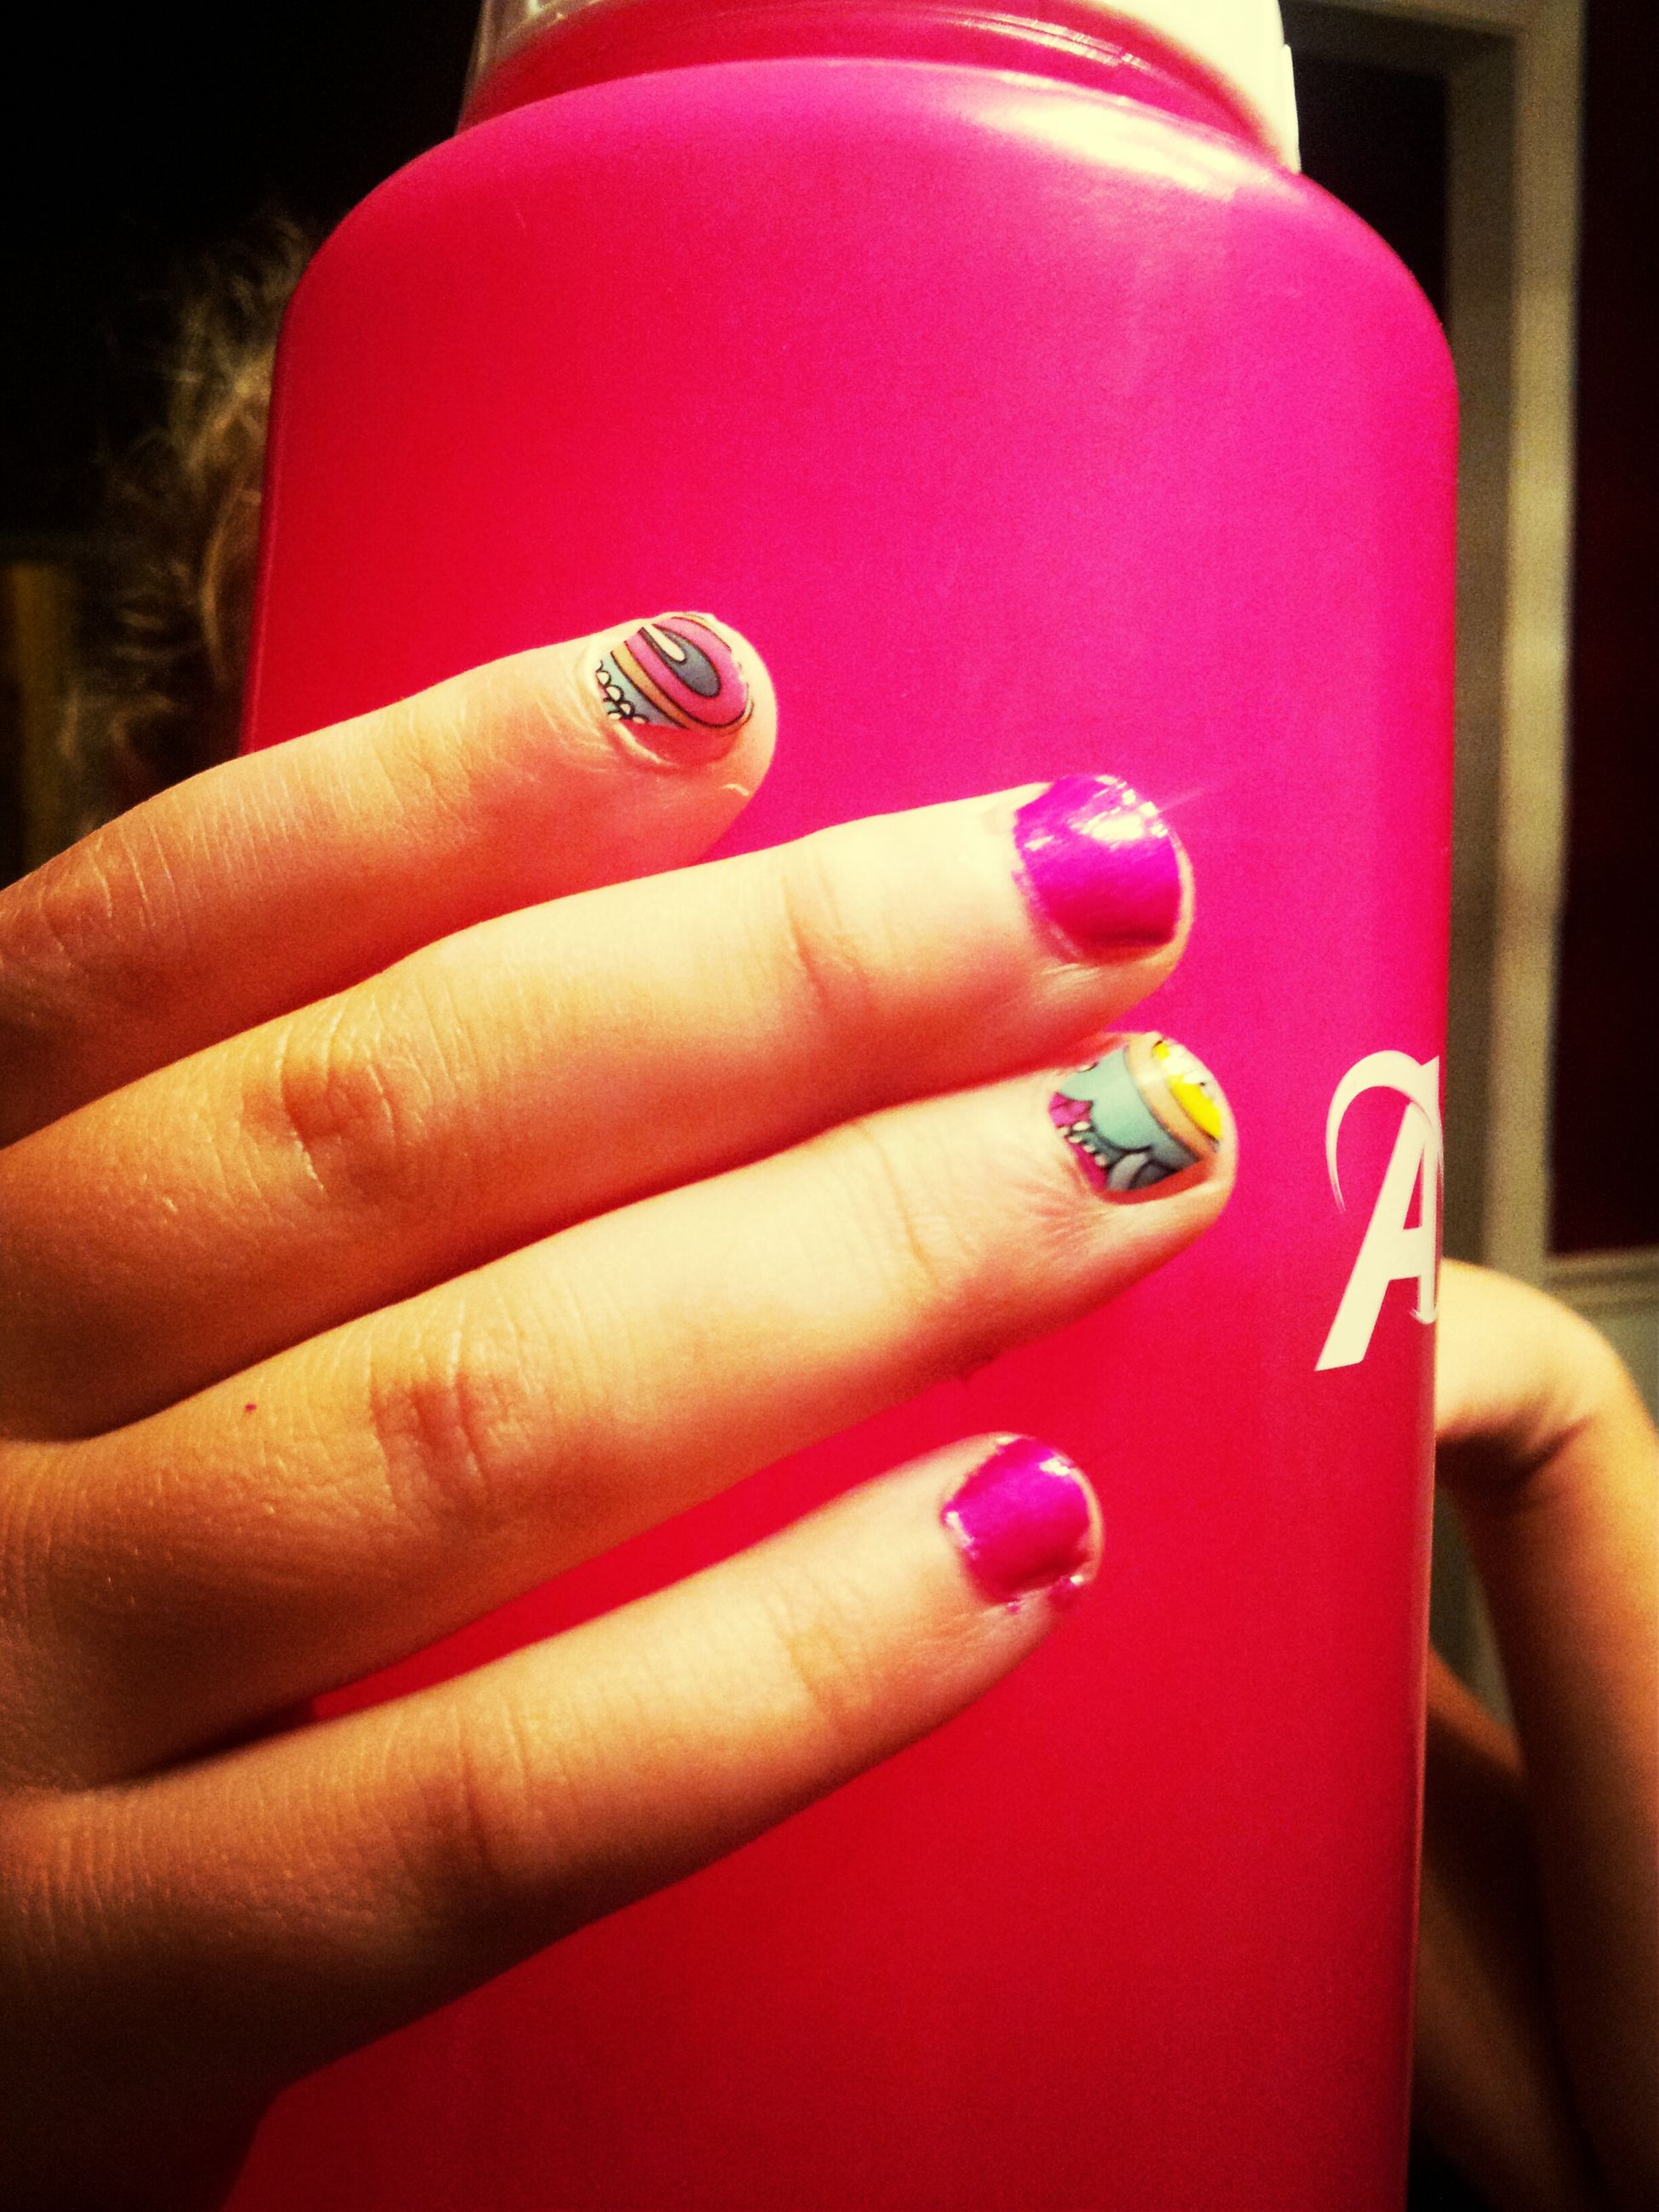 person, part of, holding, human finger, cropped, indoors, close-up, focus on foreground, lifestyles, unrecognizable person, personal perspective, red, nail polish, ring, leisure activity, showing